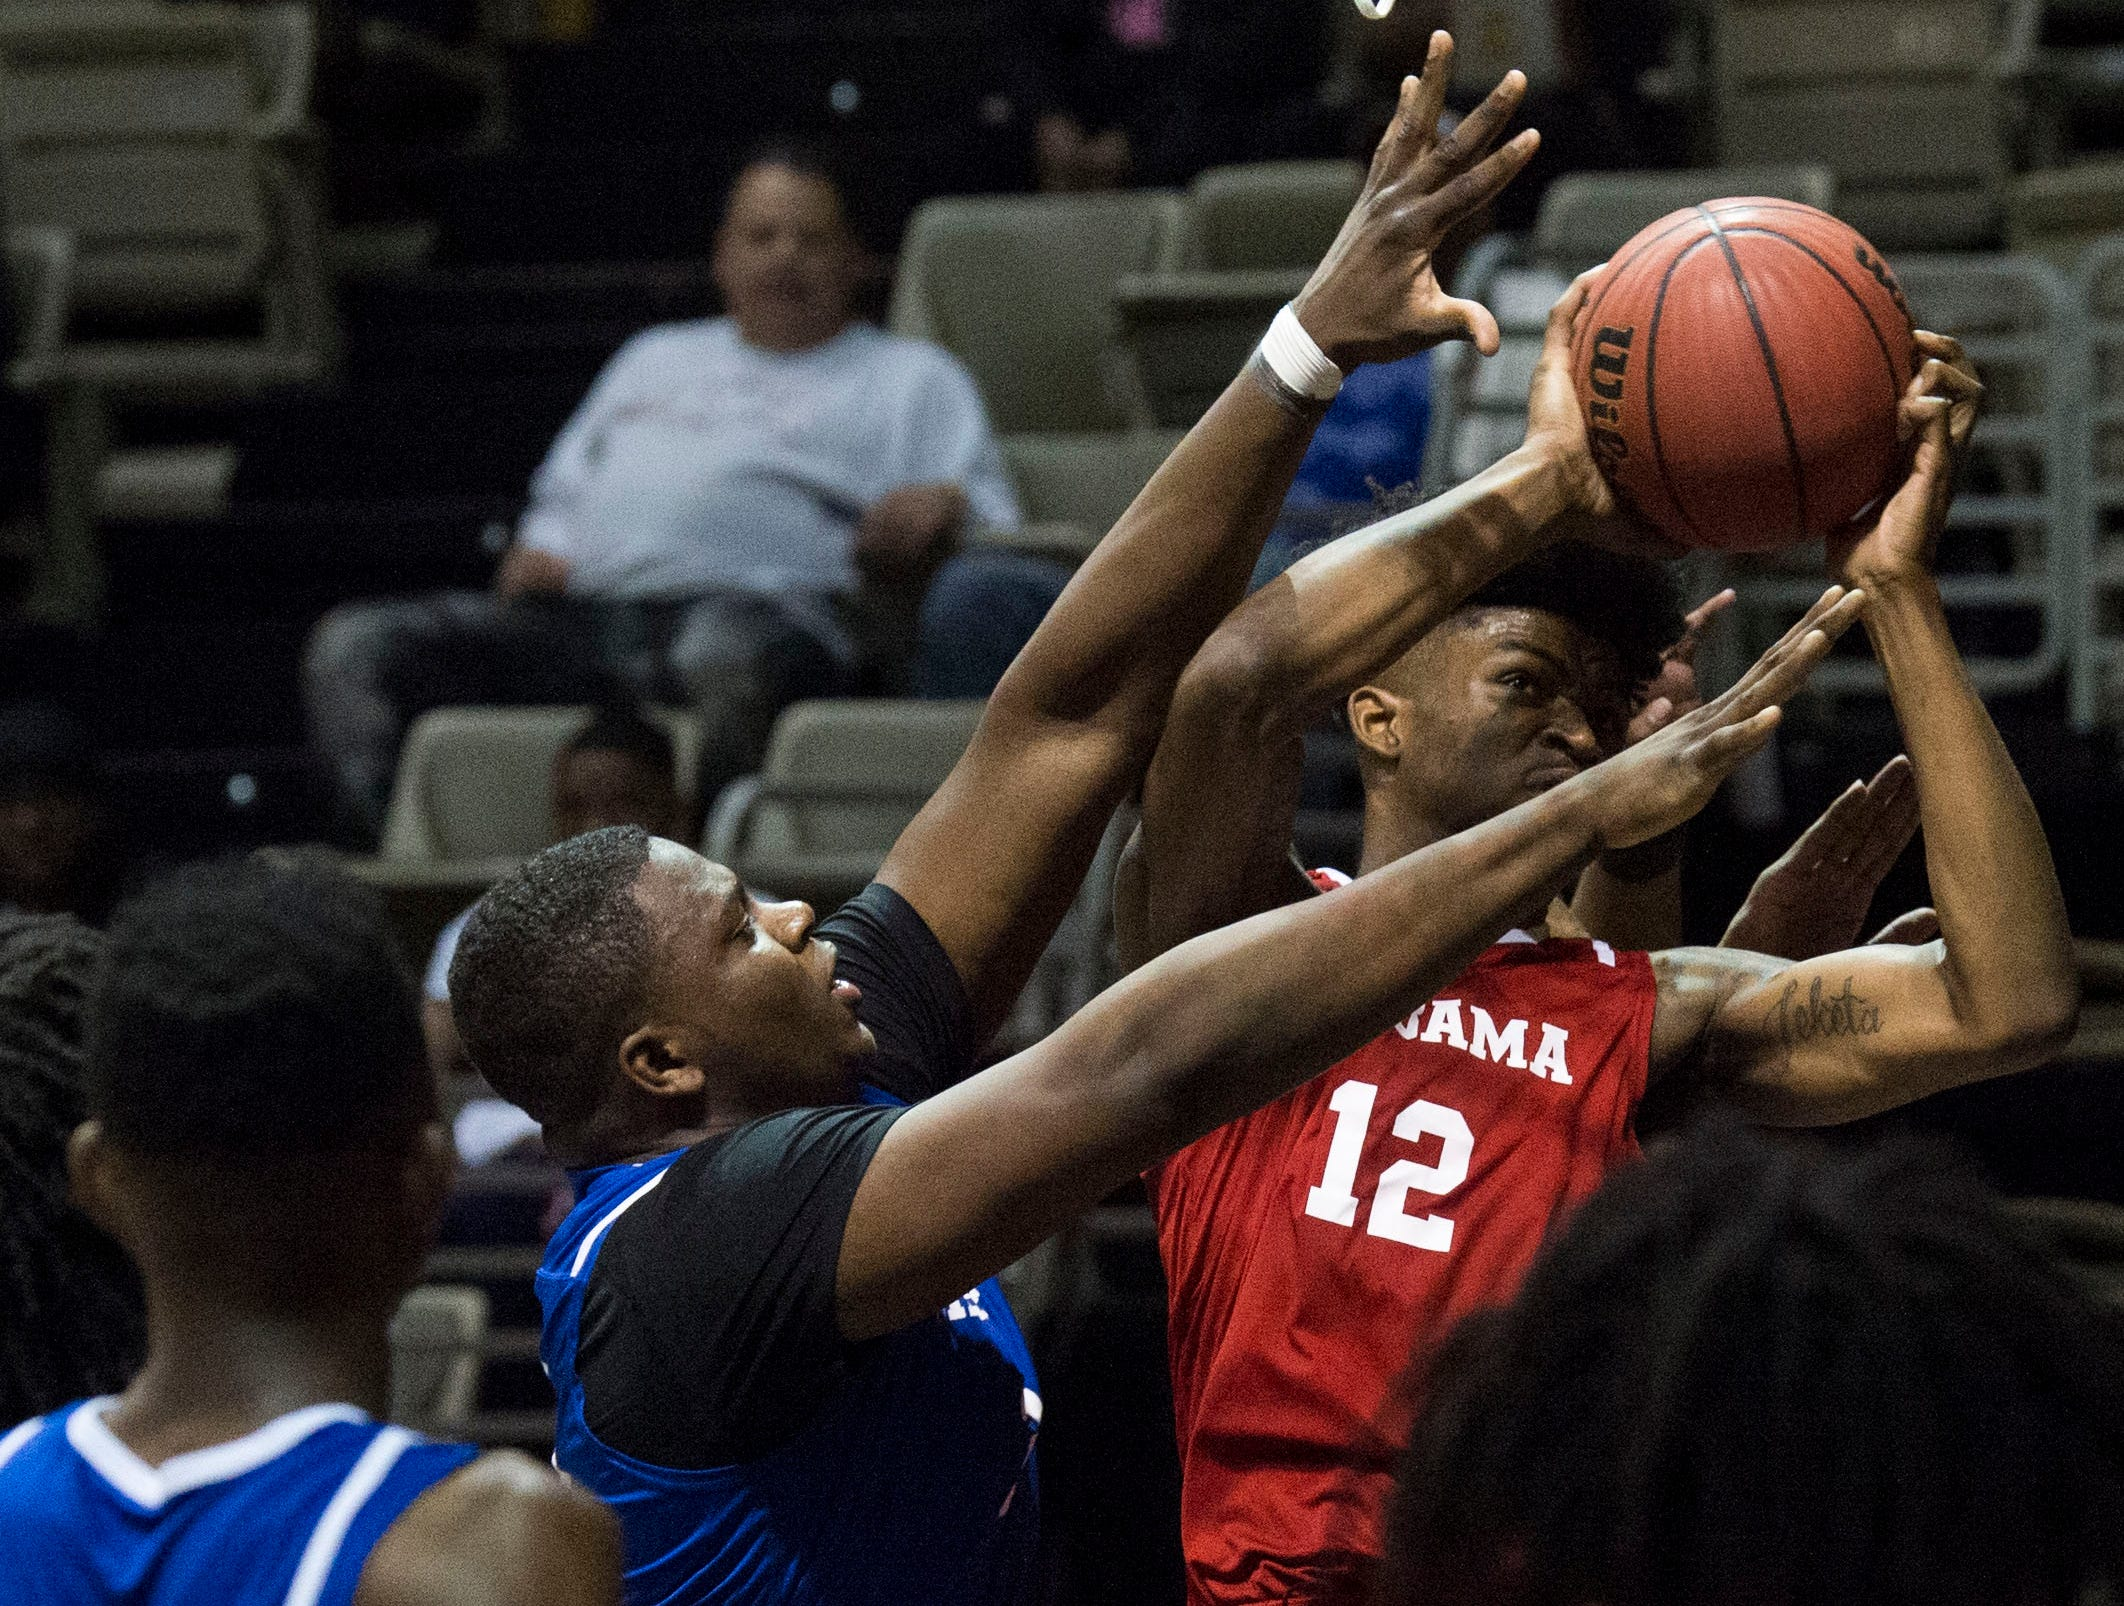 Alabama's DeAntoni Gordon (12) goes up for a layup during the Alabama-Mississippi All-Star game at the Dunn-Oliver Acadome in Montgomery, Ala., on Friday, March 15, 2019. Mississippi All-stars leads the Alabama All-stars 47-39 at halftime.